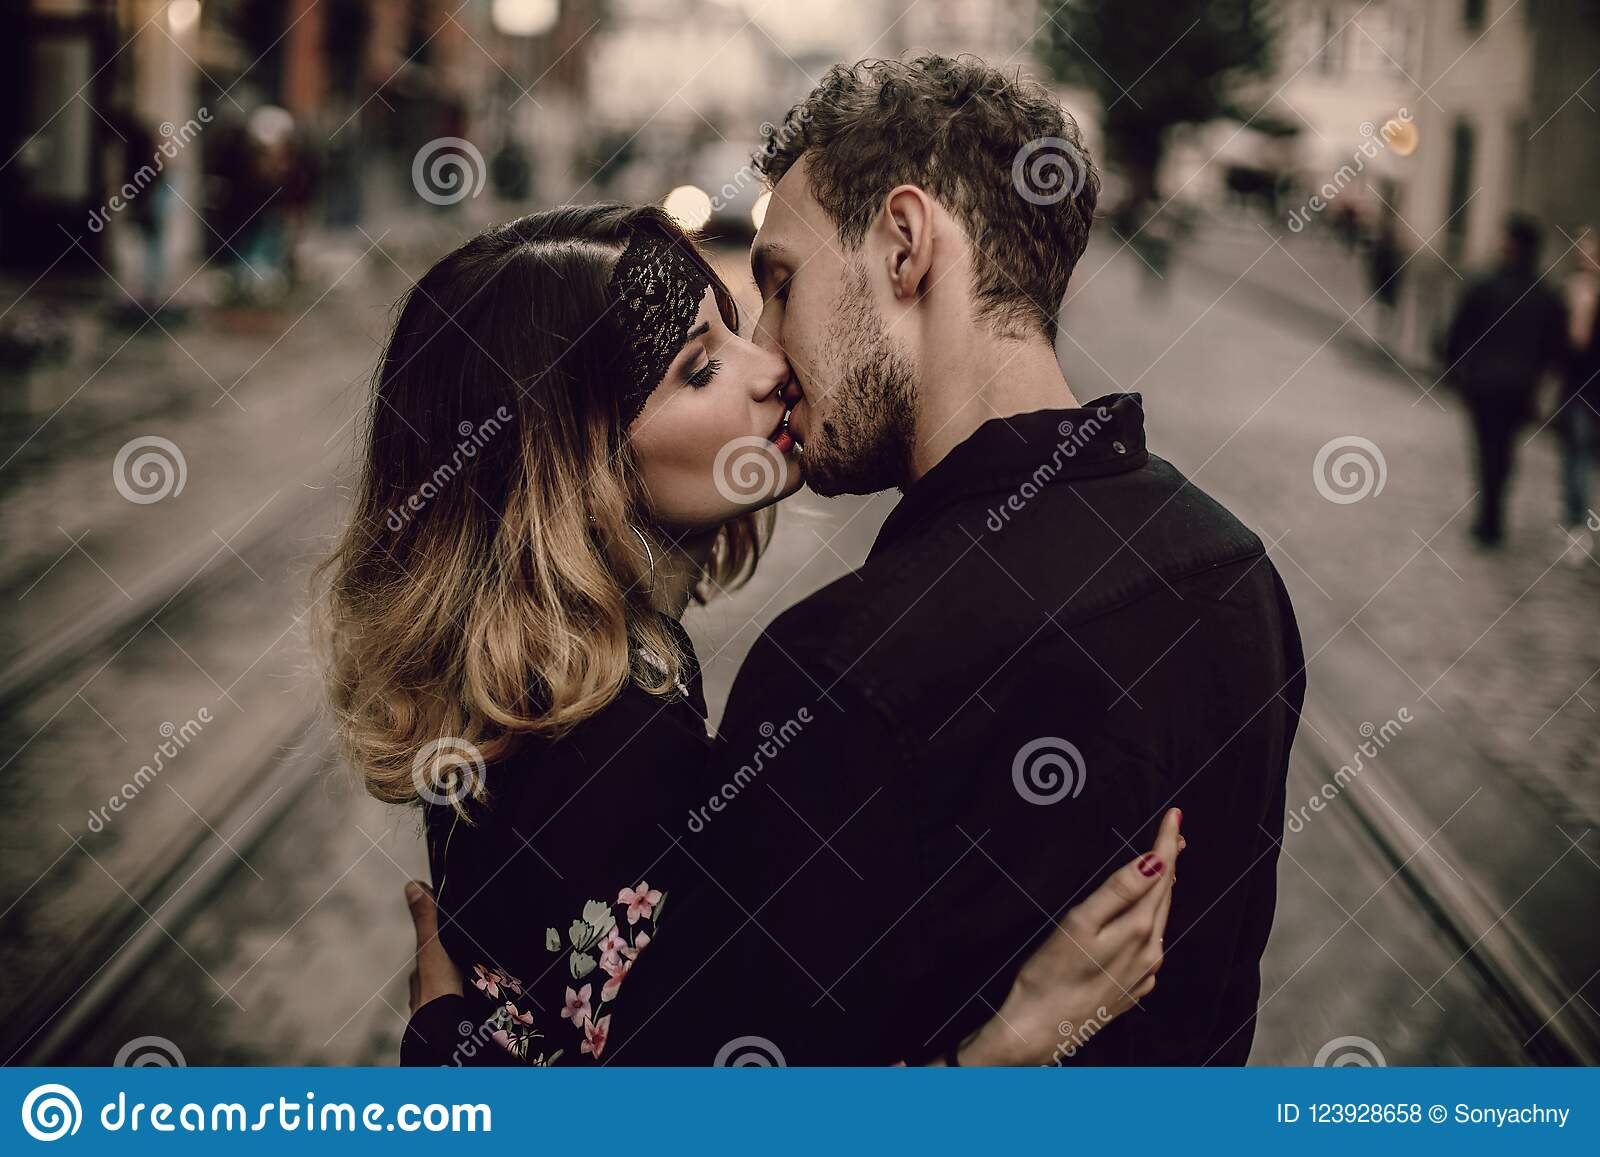 man and woman french kissing